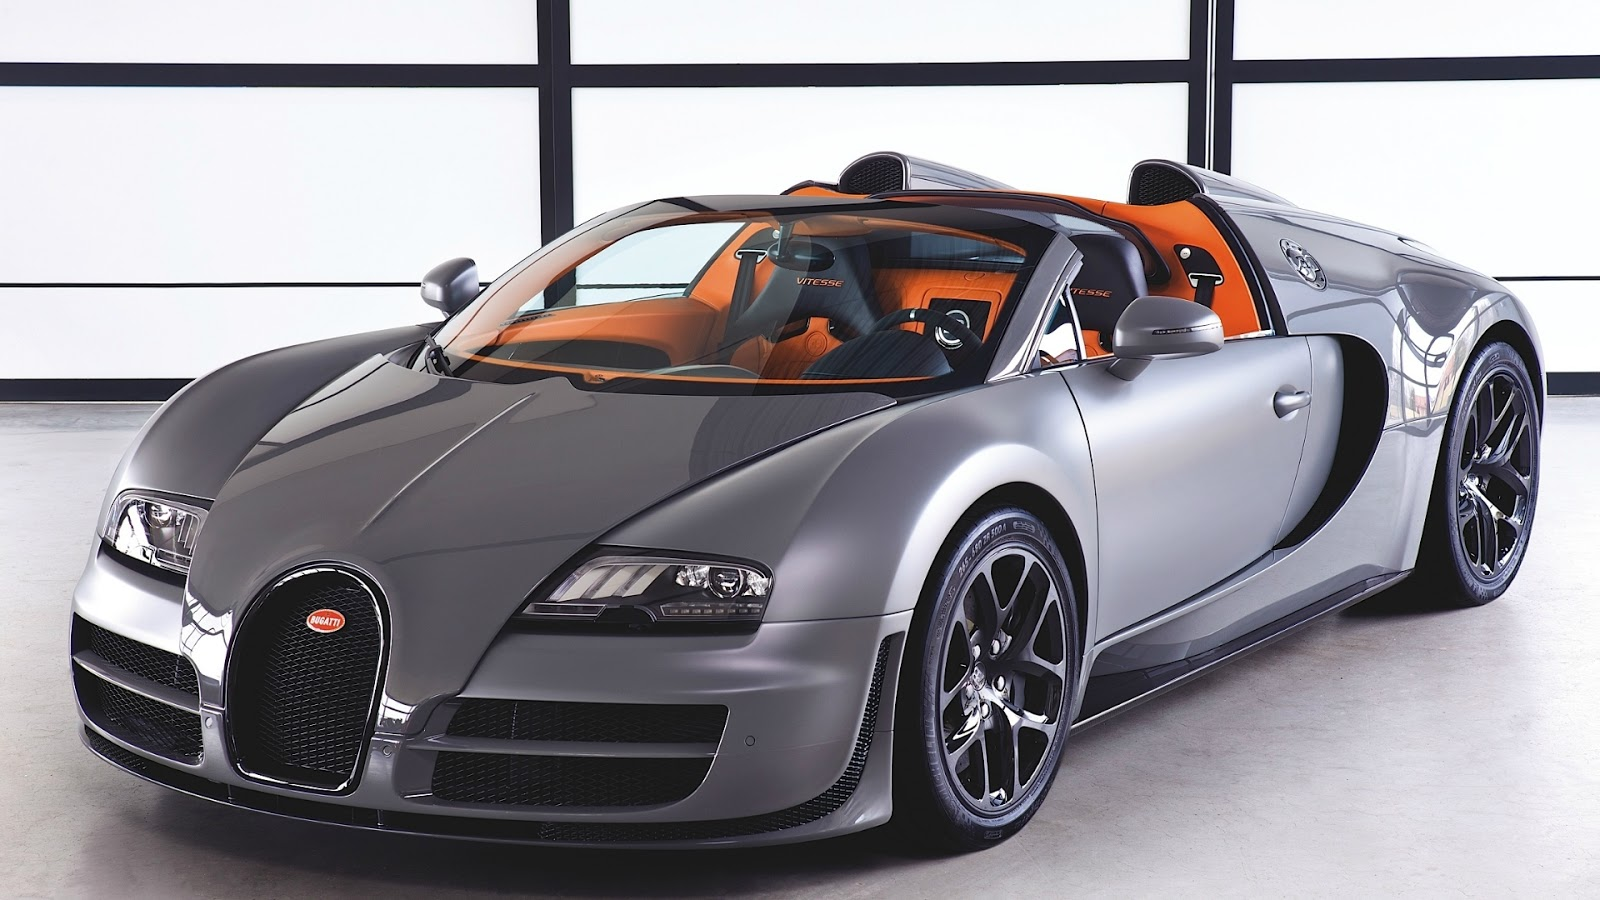 BUGATTI VEYRON HD WALLPAPERS | Top HD Wallpapers